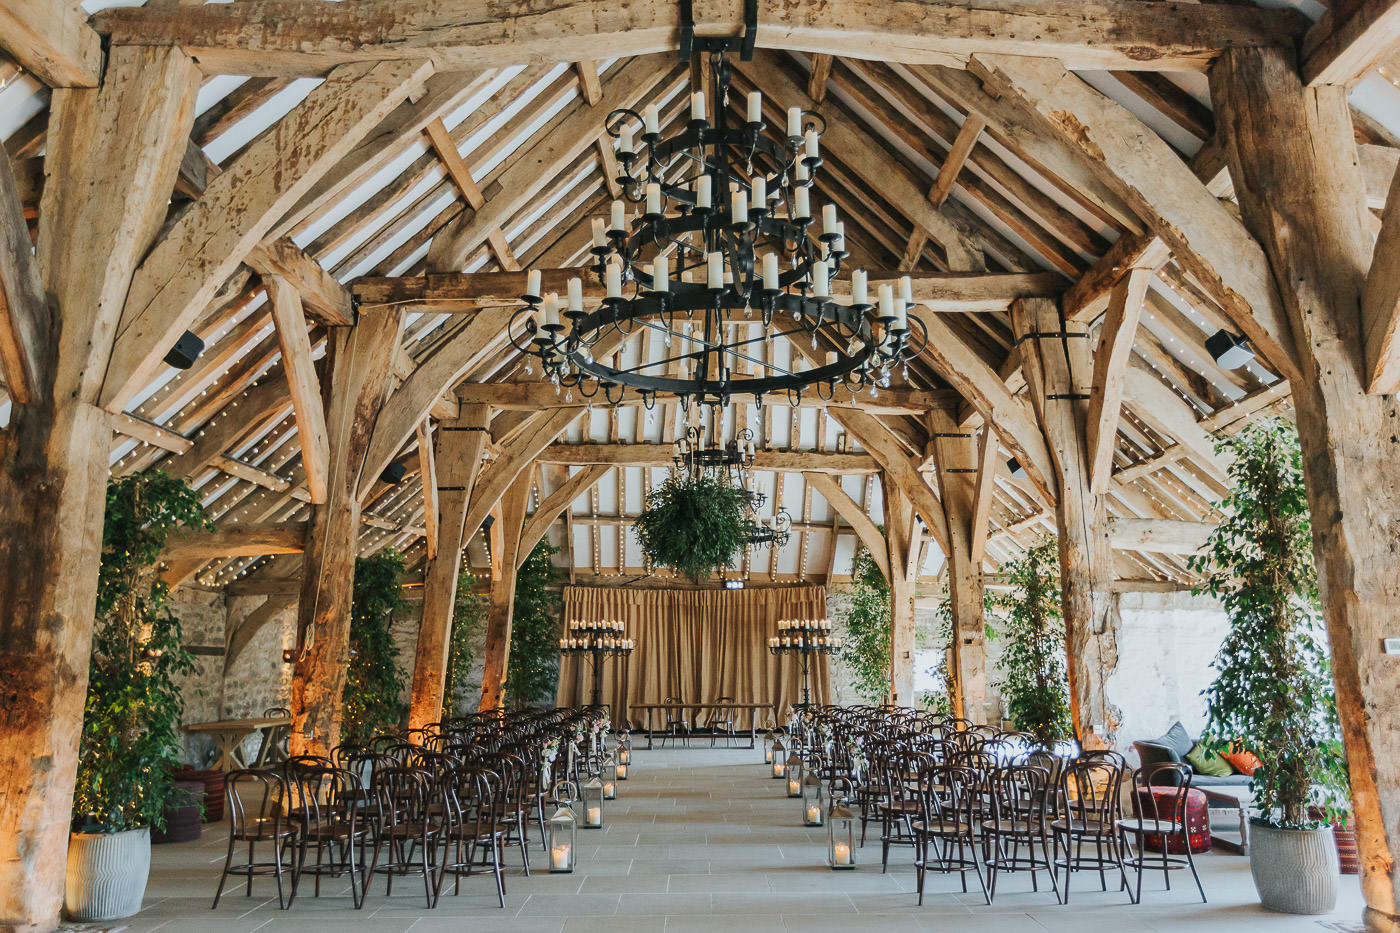 Tithe Barn - Laura Calderwood Photography - 29.3.19 - Mr & Mrs Lancaster290319-41the+tithe+barn+bolton+abbey+wedding+venue.jpg